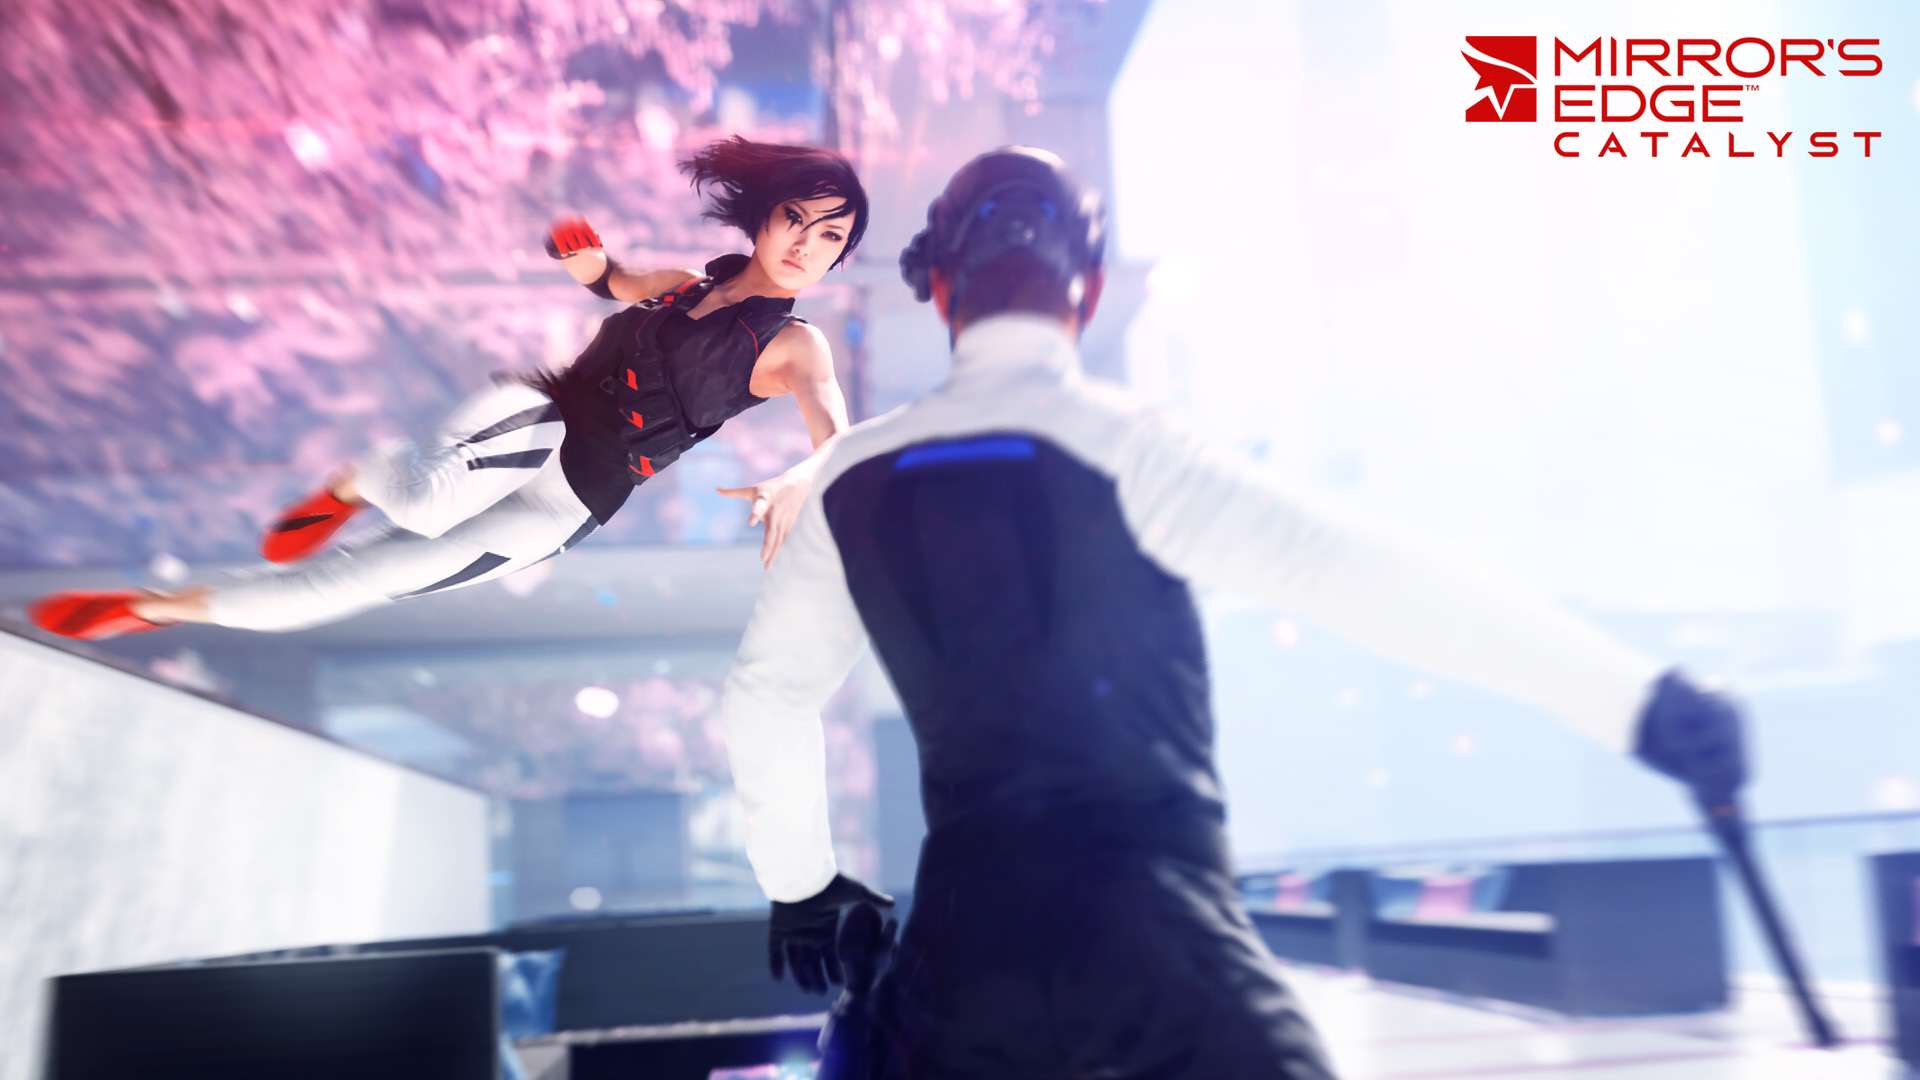 Mirrors Edge Catalyst Gets A New Story Trailer, Beta Test Announced 2885761 mecatalyst screen3